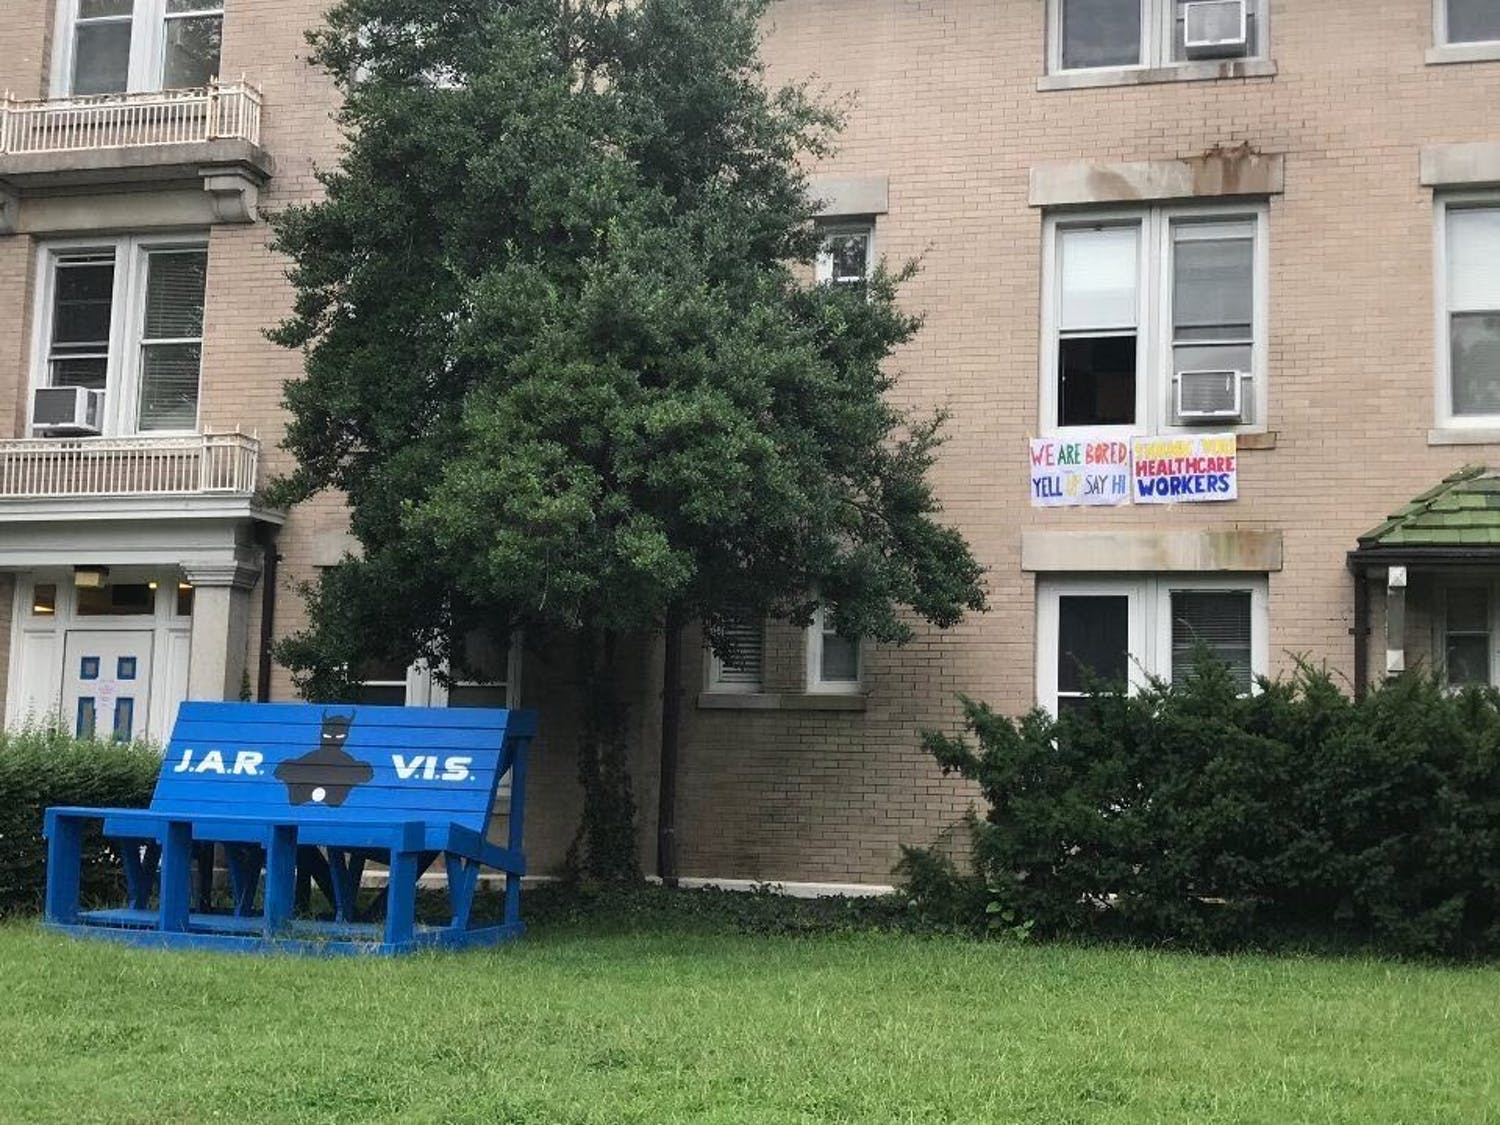 """A poster hanging from a window hints at Jarvis dorm's purpose as an isolation space, reading, """"We are bored. Yell up to say hi."""""""